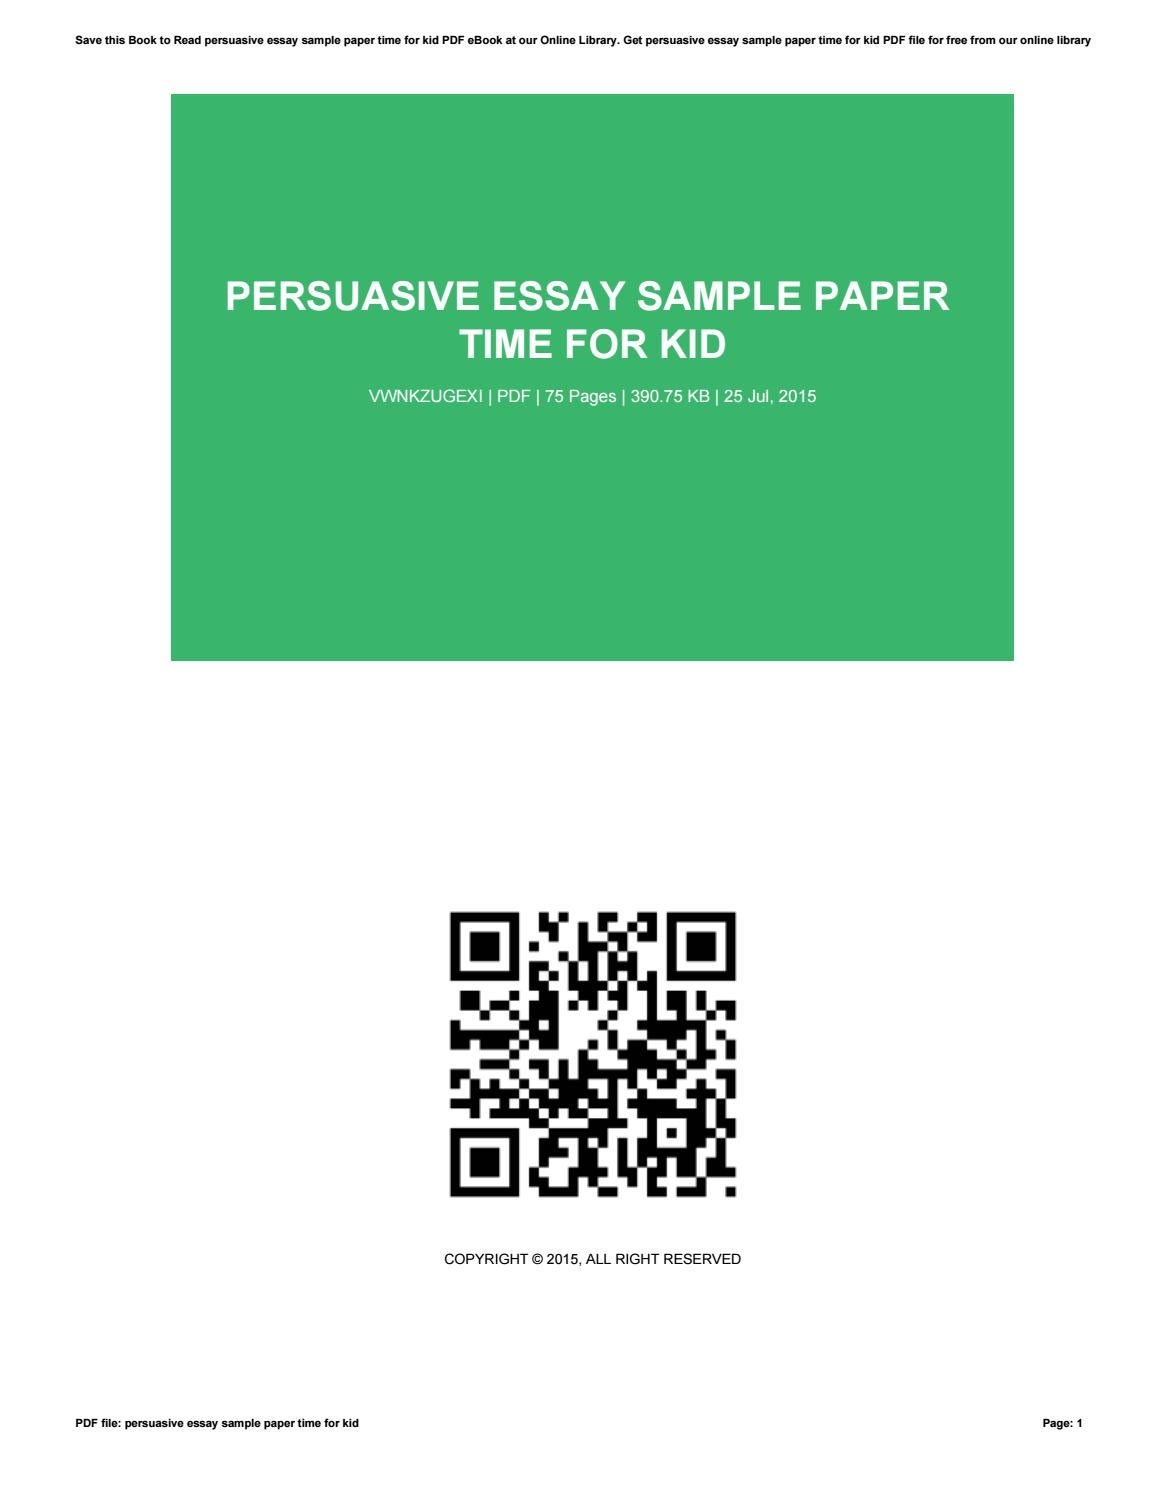 Cause And Effect Essay Thesis Persuasive Essay Sample Paper Time For Kid By Carltonbartsch Page  Persuasive  Essay Sample Paper Time Research Essay Proposal Example also Compare And Contrast Essay Papers Persuasive Essay Sample Paper What Is A Good Persuasive Essay Thesis Statement Examples For Narrative Essays